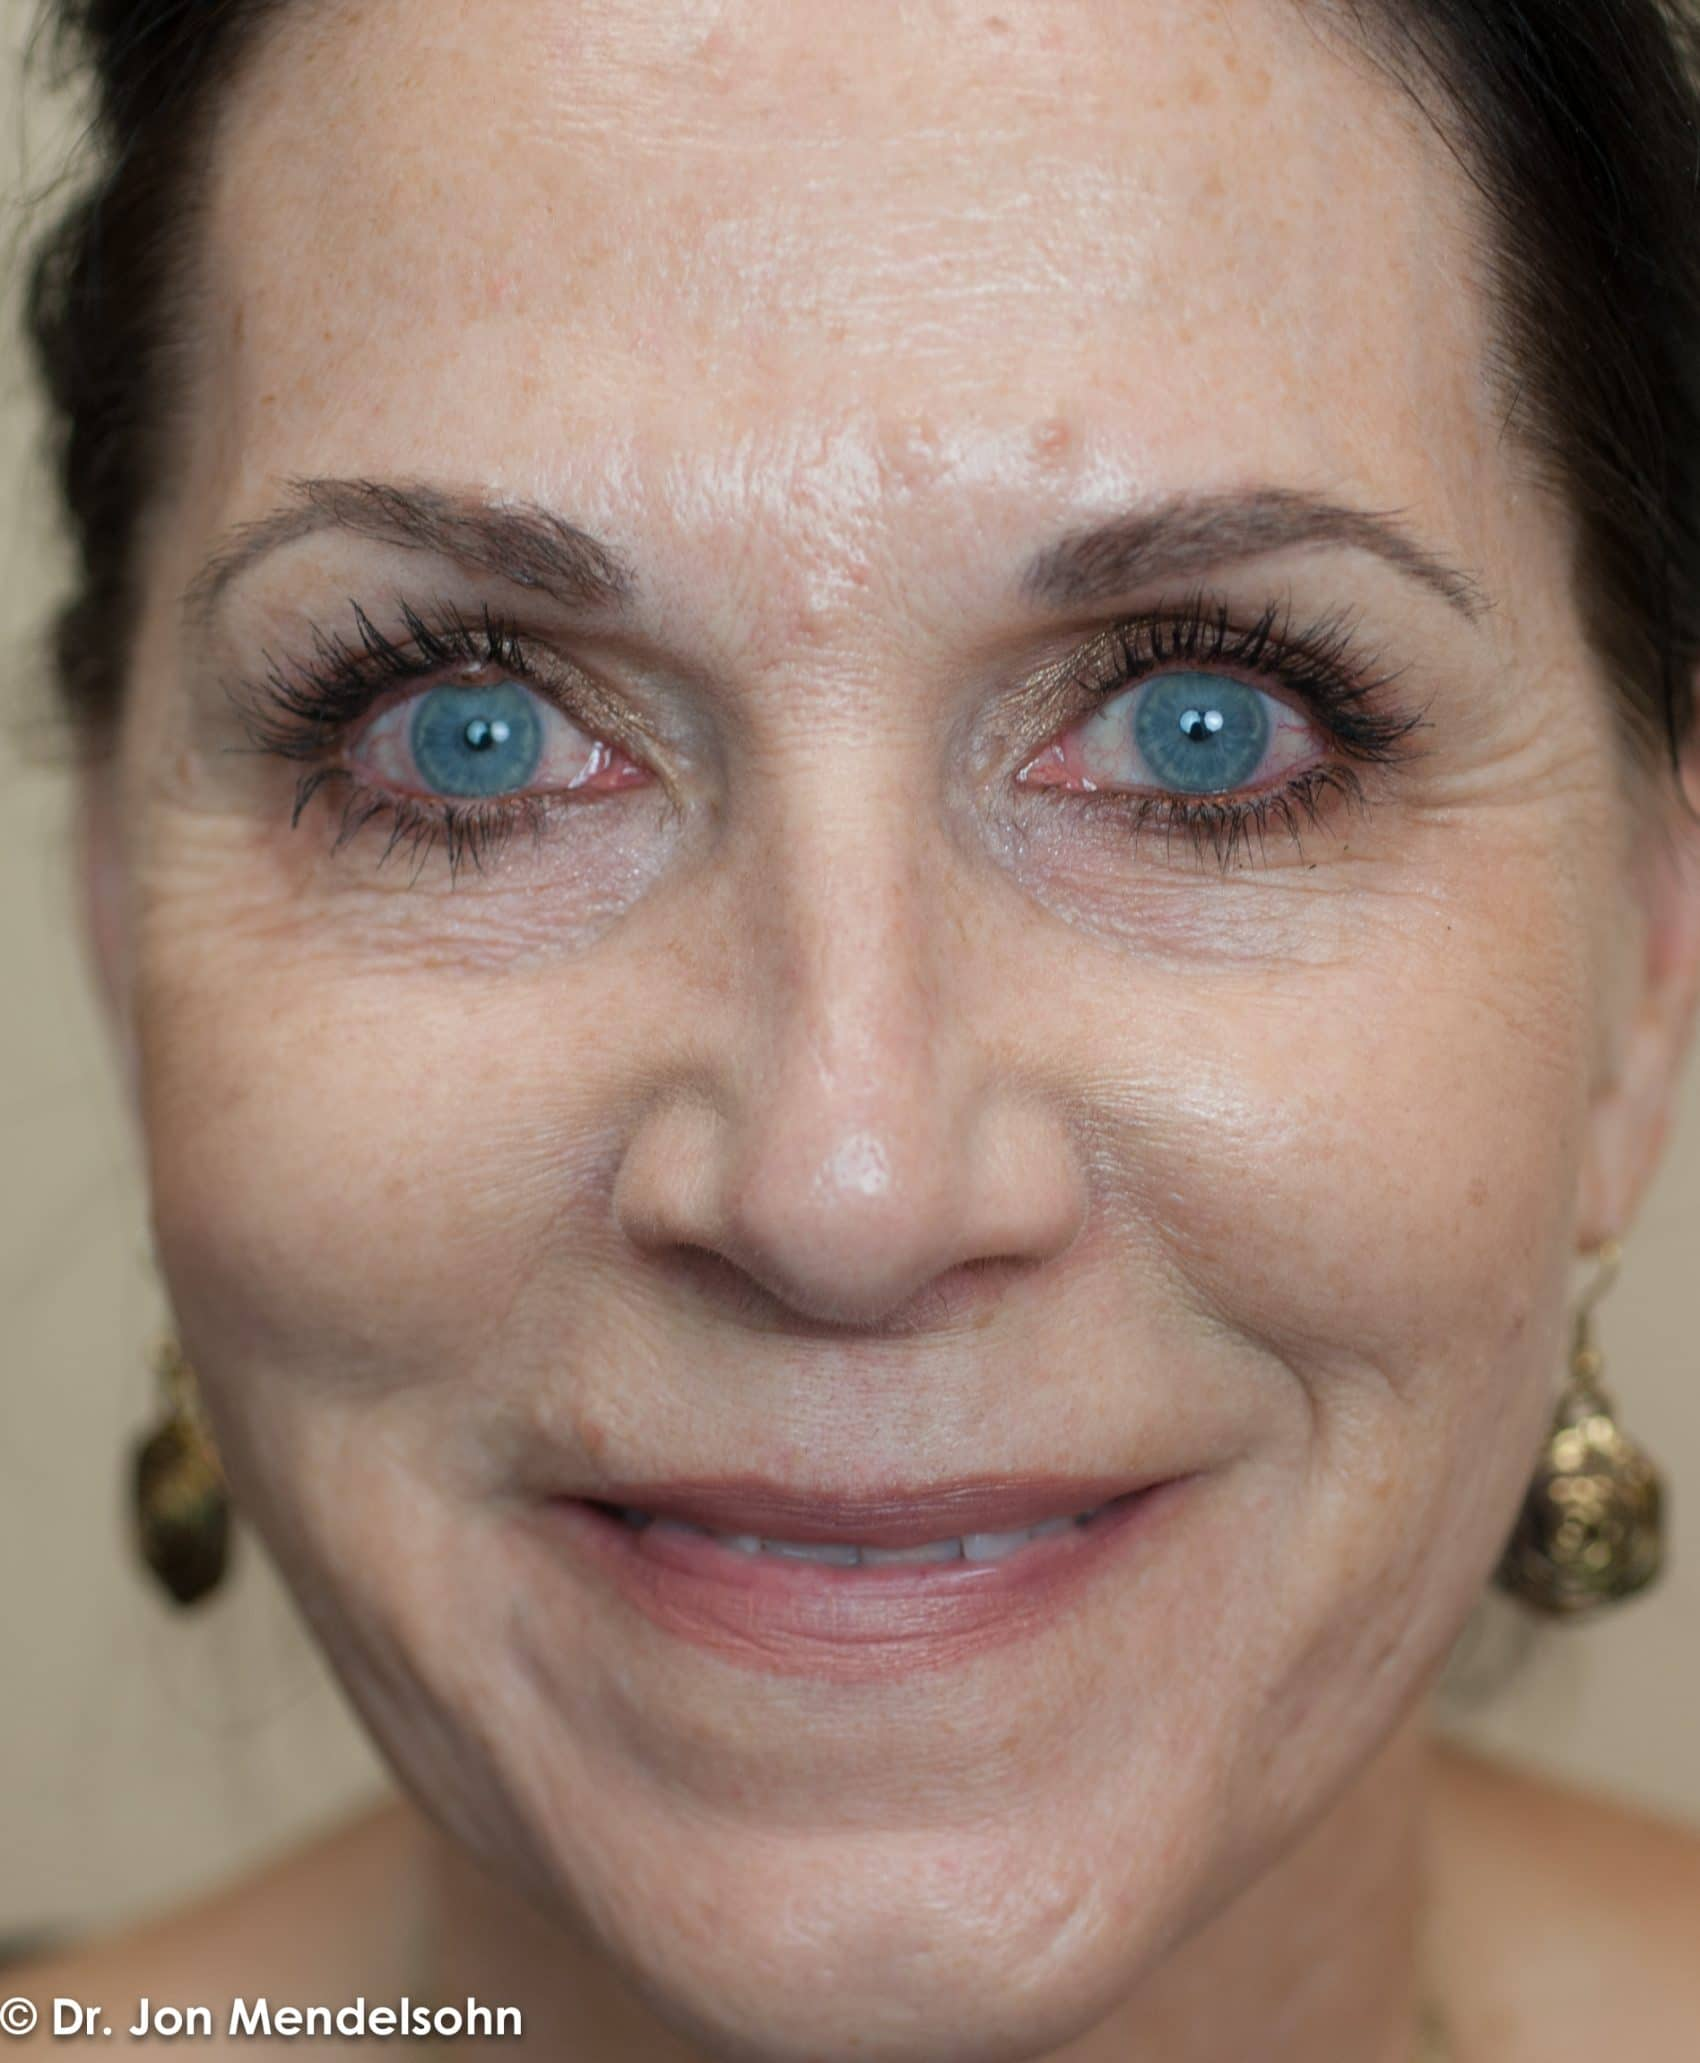 Upper-blepharoplasty-eyelid-surgery-cincinnati-dr-jon-mendelsohn-best-eyelid-surgery-plastic-surgery-realself-truseselfies-frontal-after-Drake-Robin-7474-2